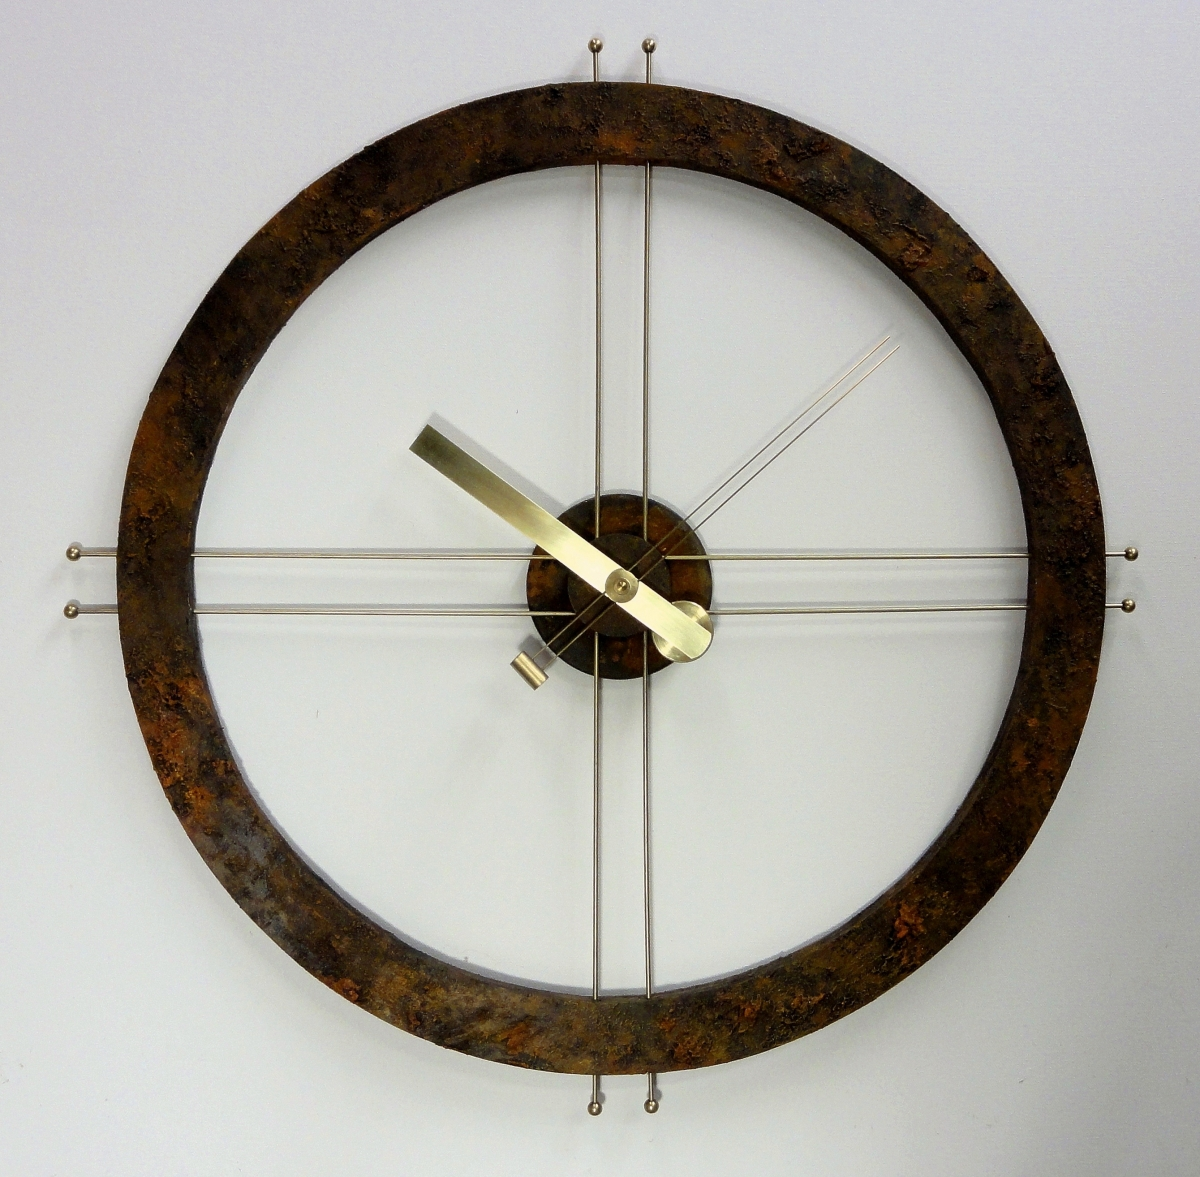 Steampunk Rust Clock by Art Donovan (large view)